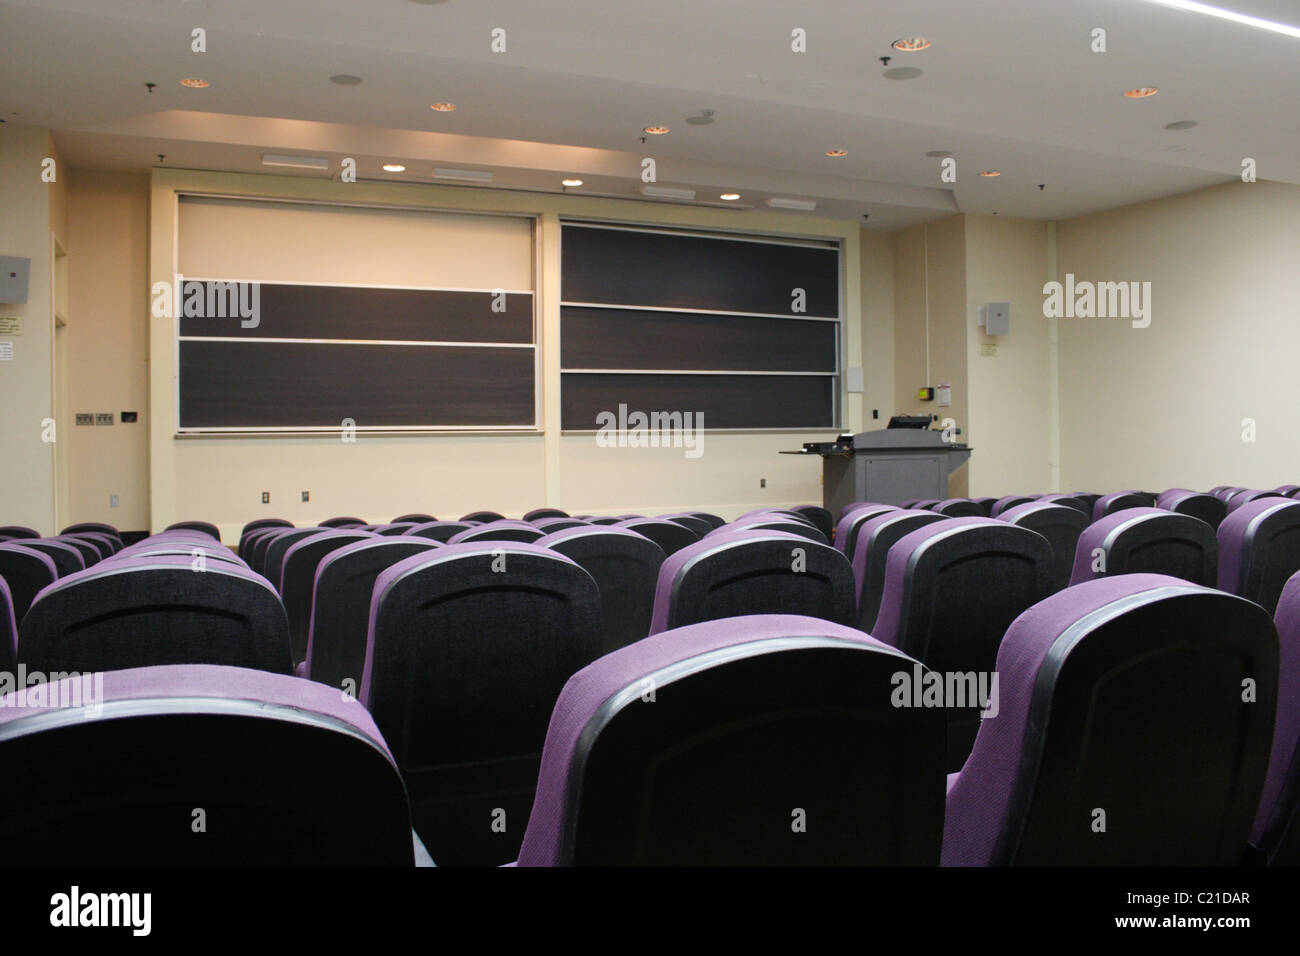 Empty university lecture room in USA. - Stock Image